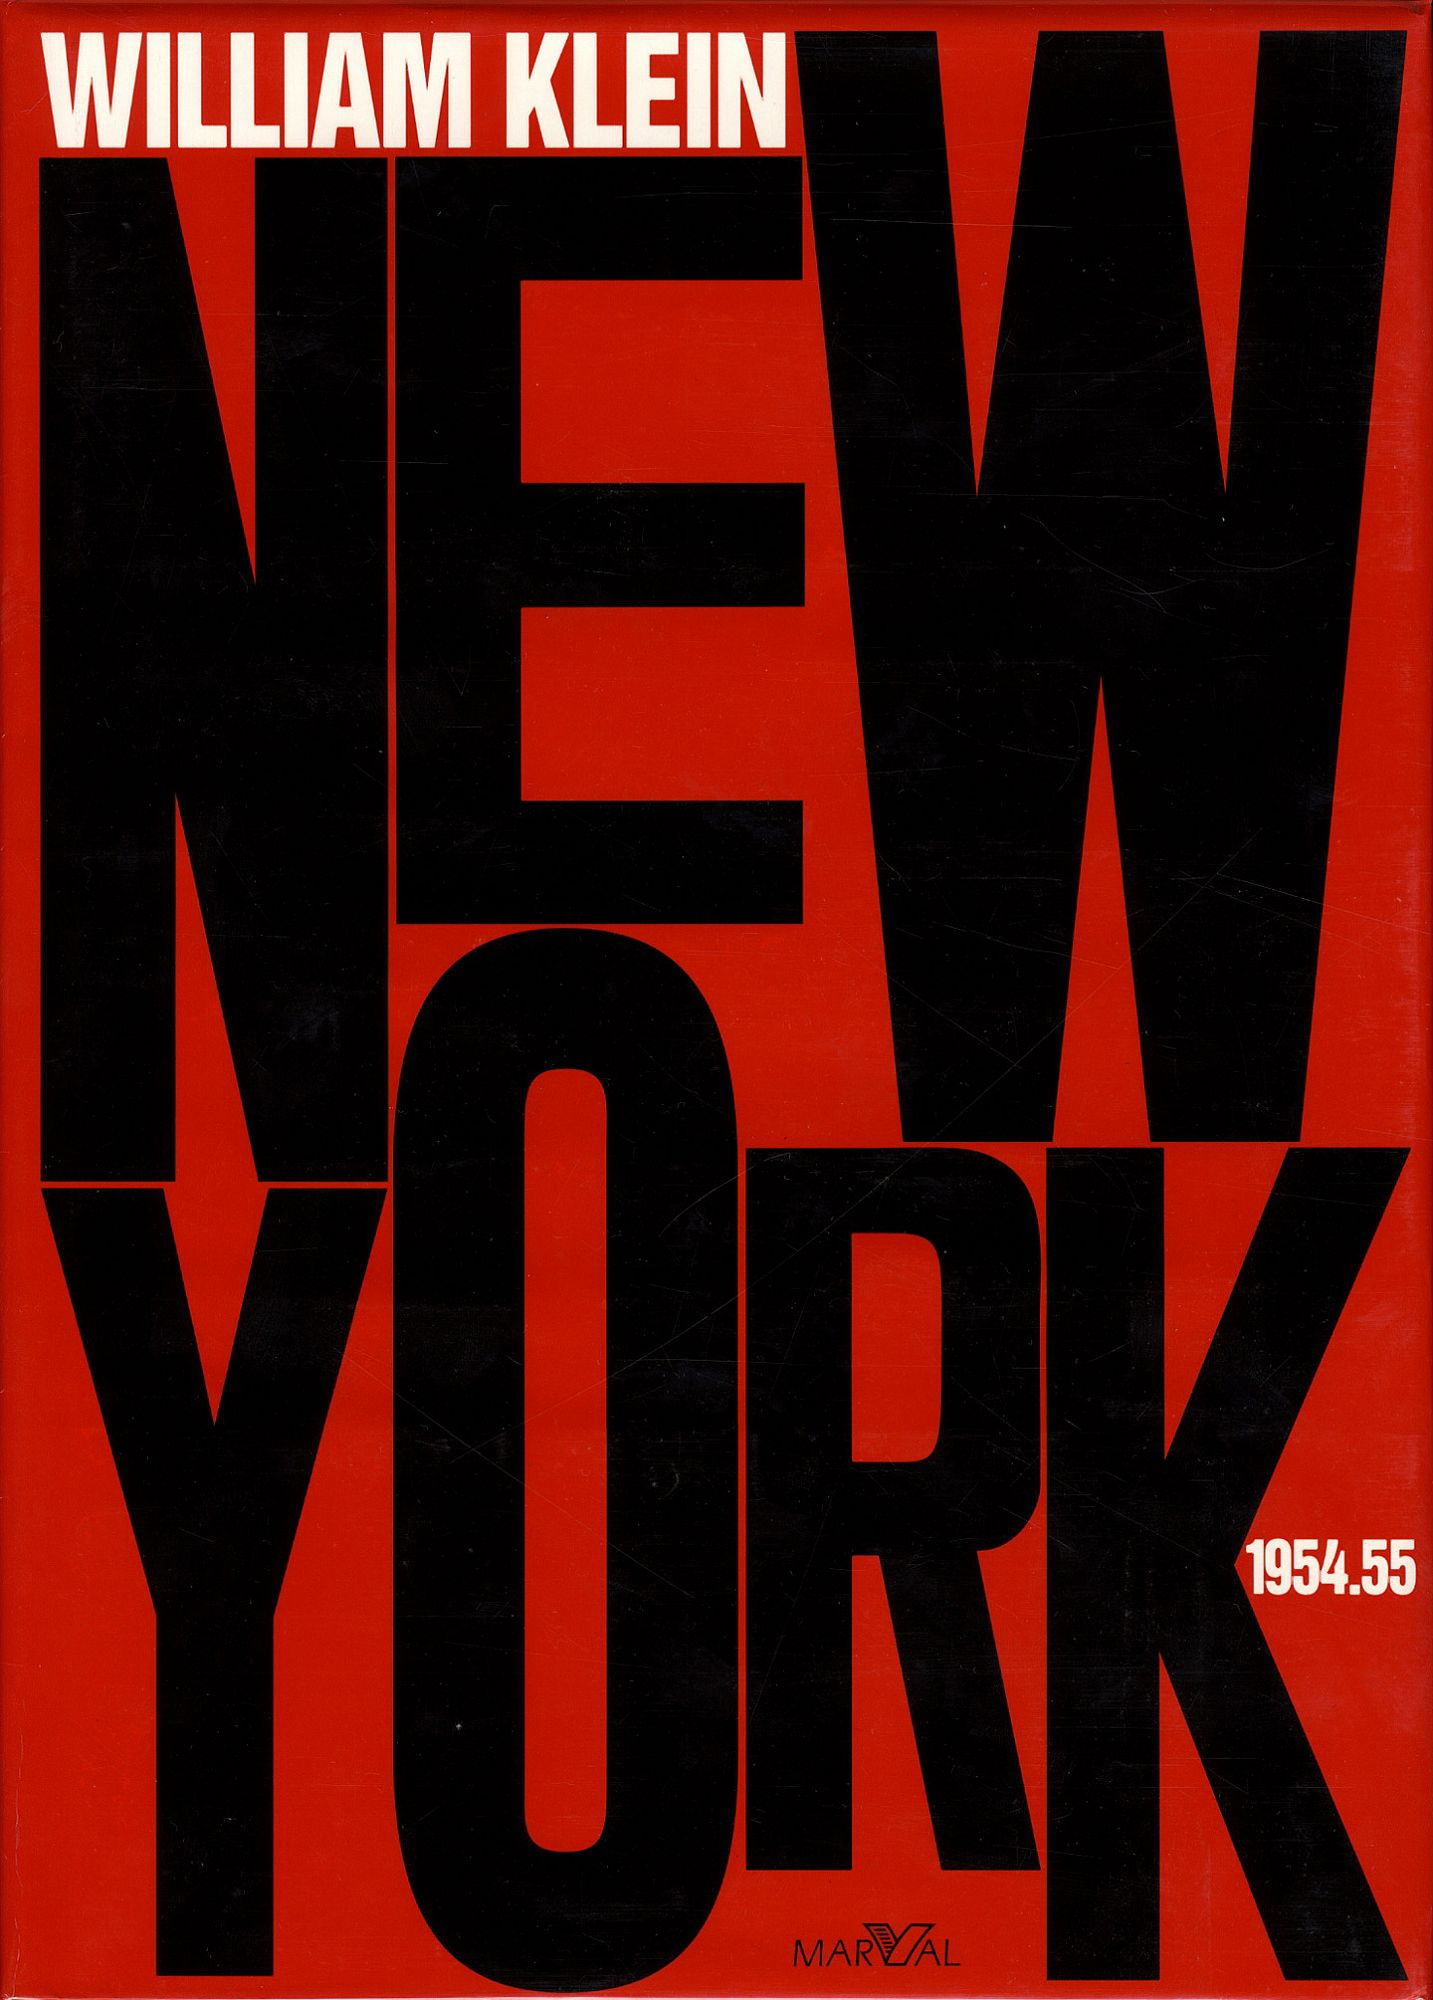 William Klein: New York 1954-55: Life is Good & Good For You In New York: Trance Witness Revels (1995 French Edition) [SIGNED]